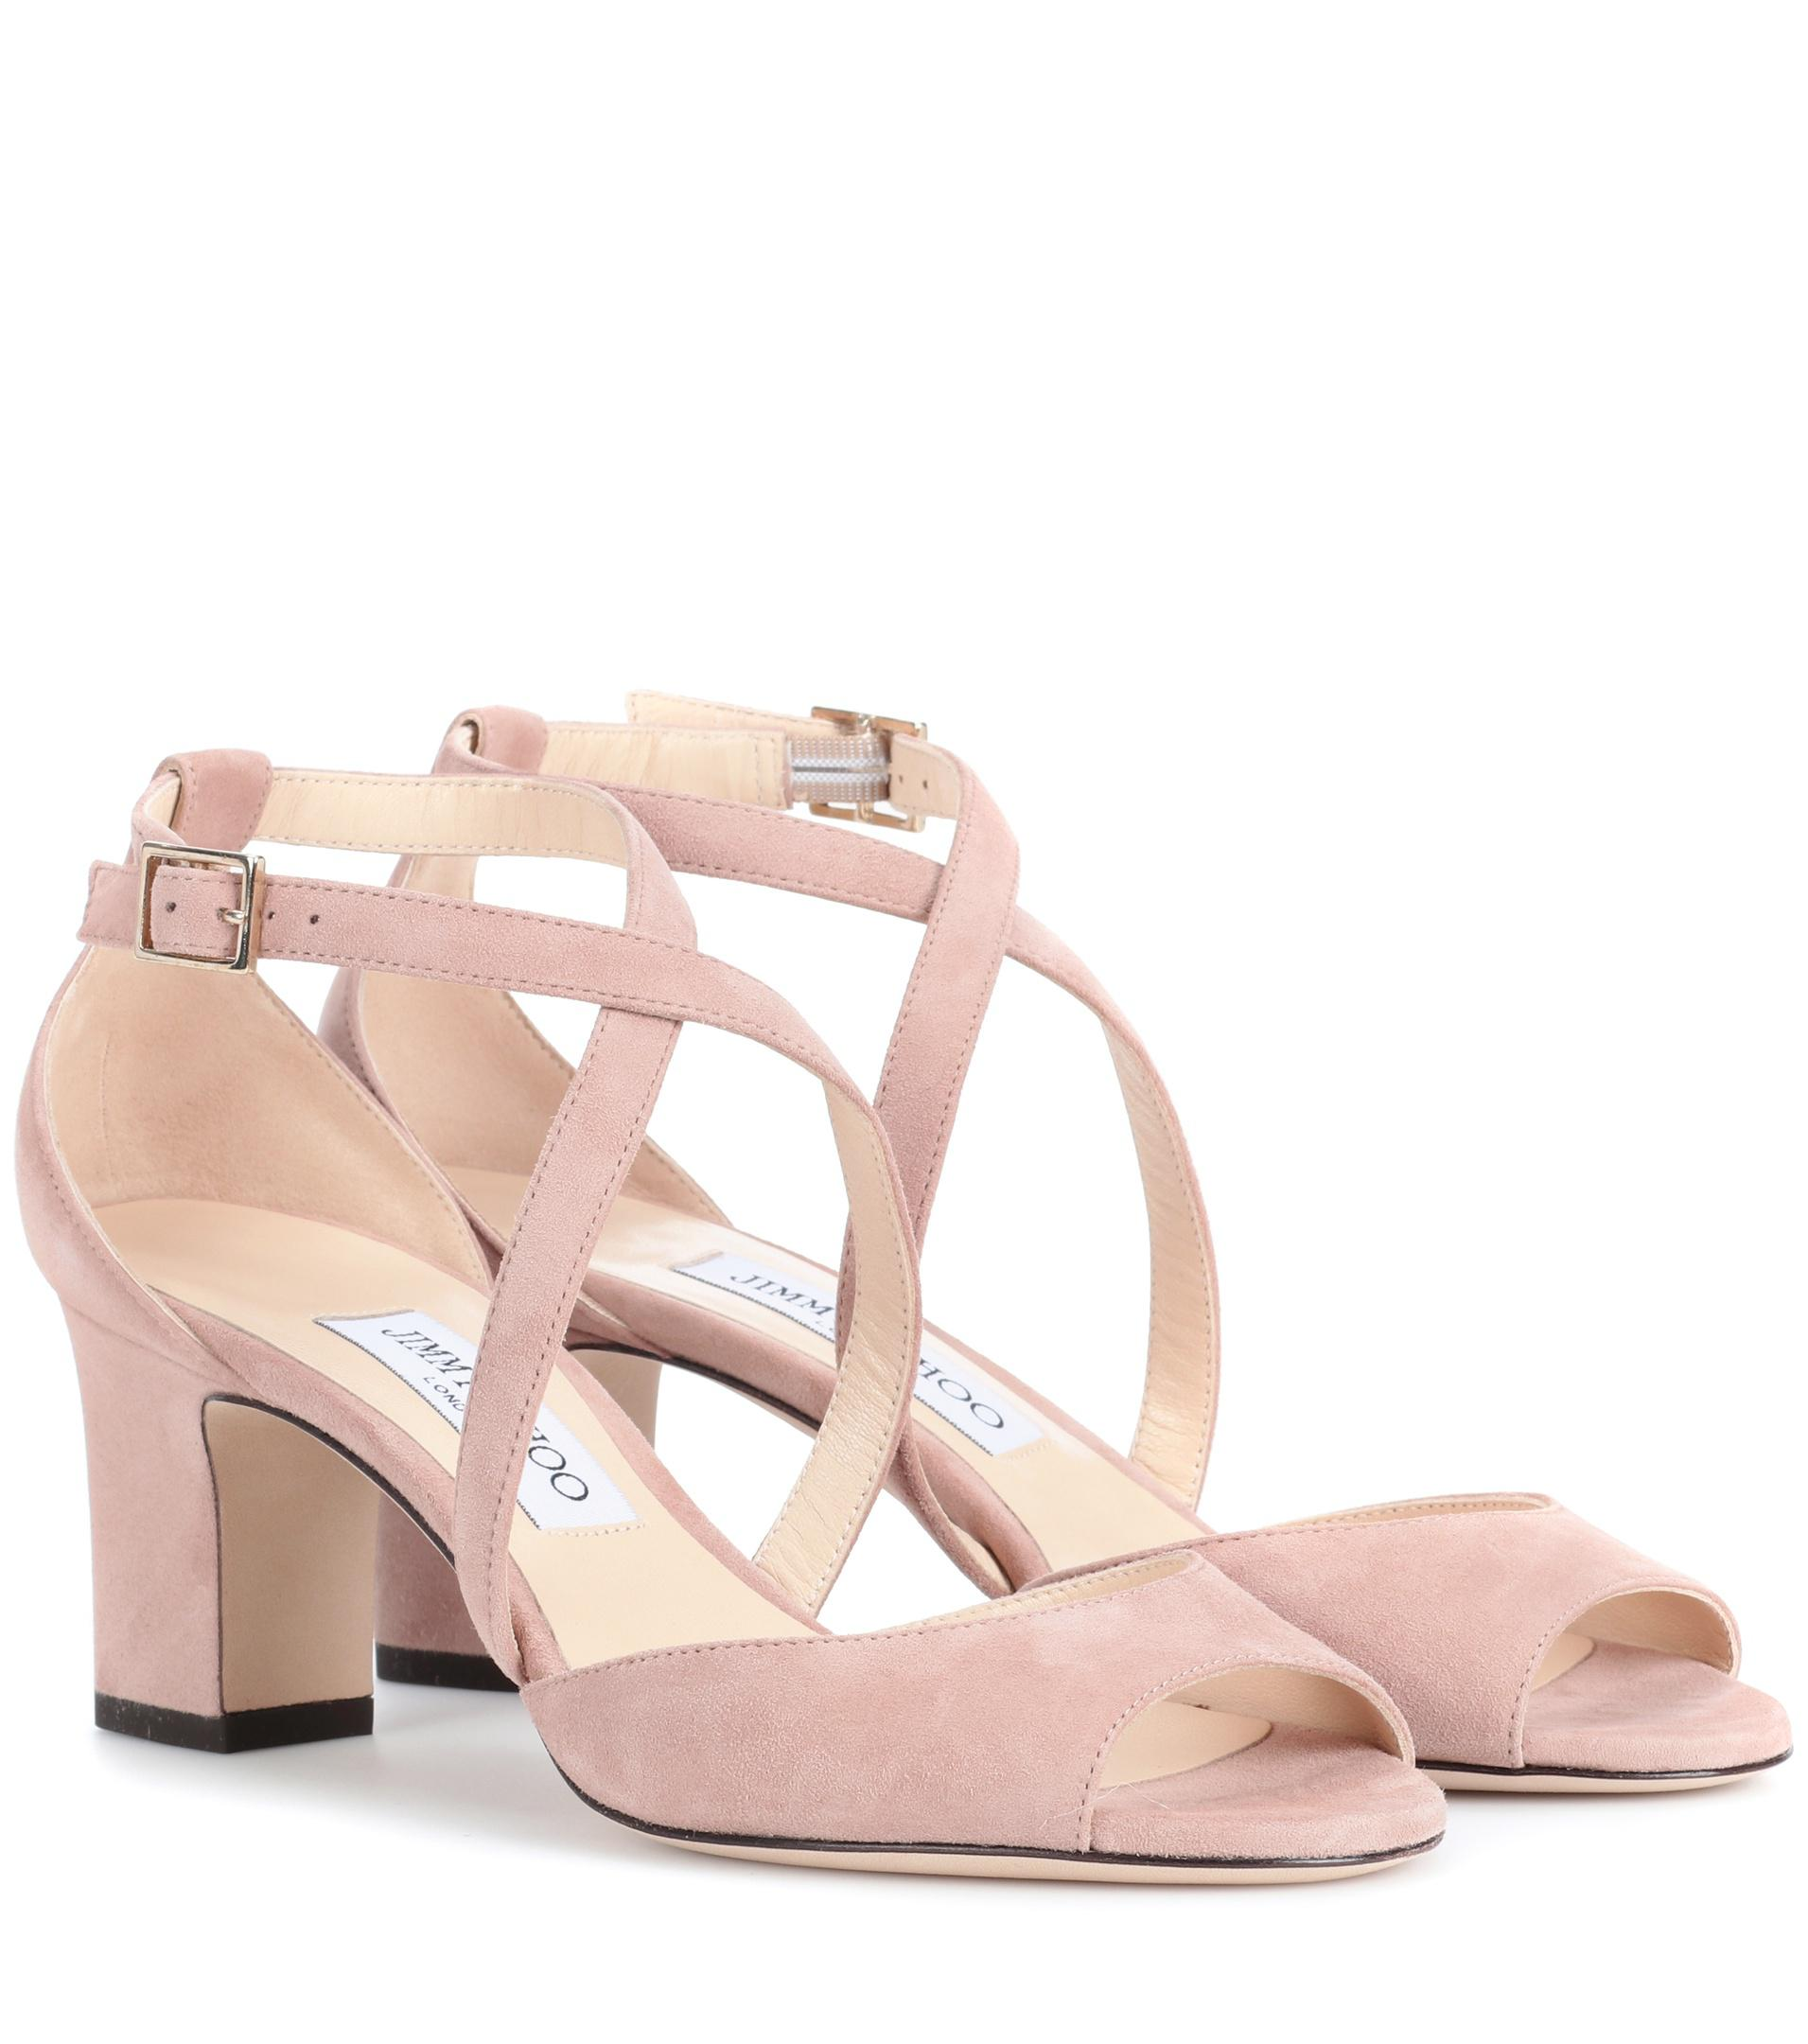 Jimmy choo Carrie 65 suede sandals QPi3wLkNa0